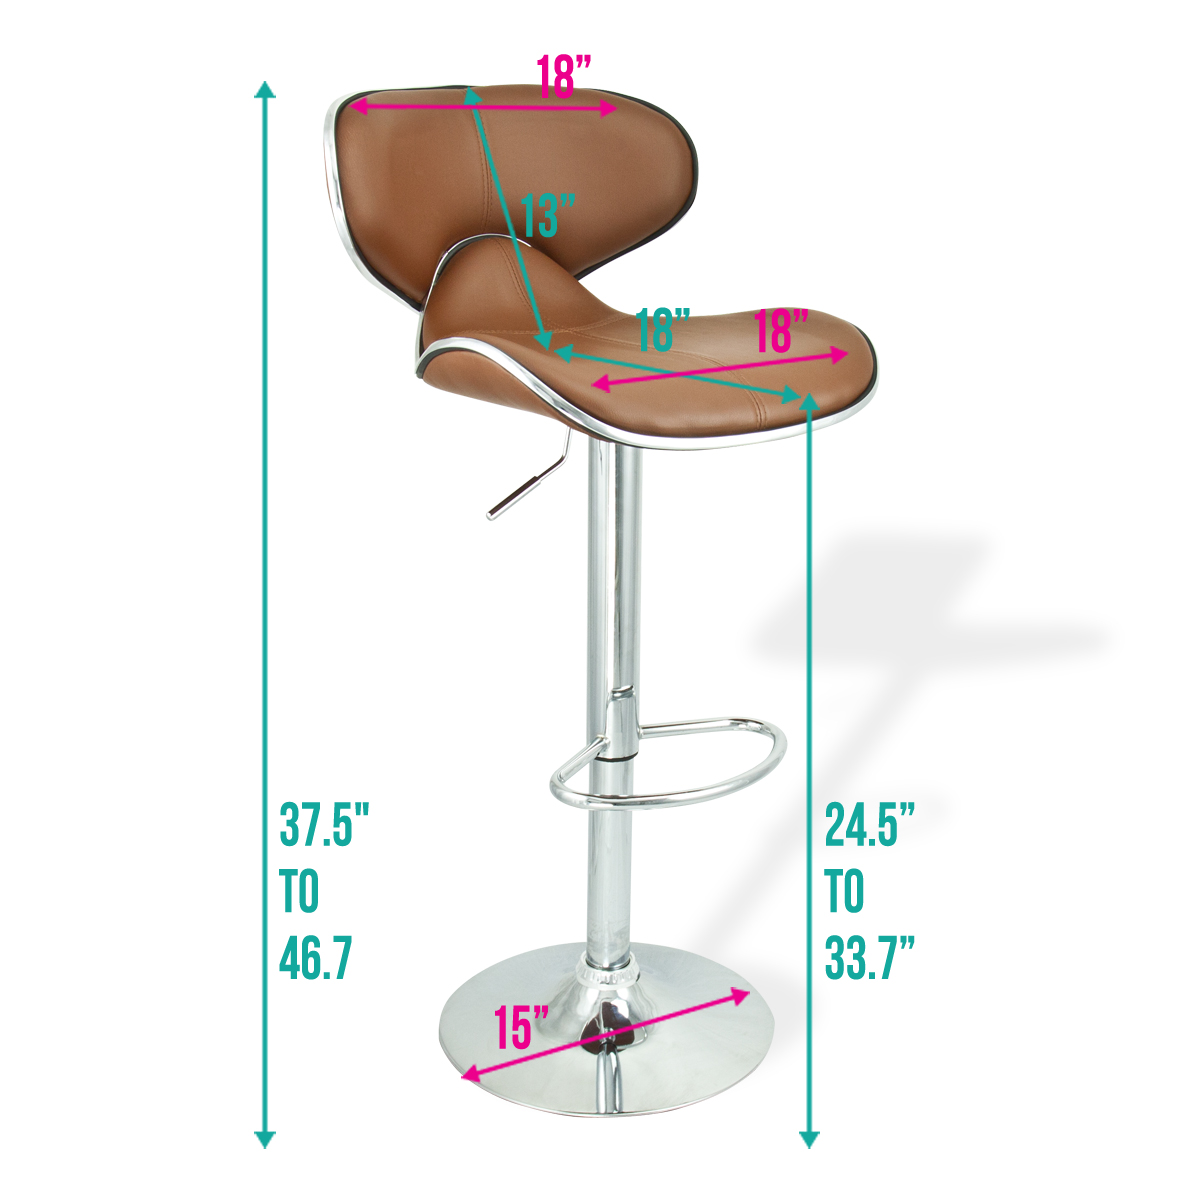 6 Mocha Modern Adjustable Barstool Swivel Elegant Pu